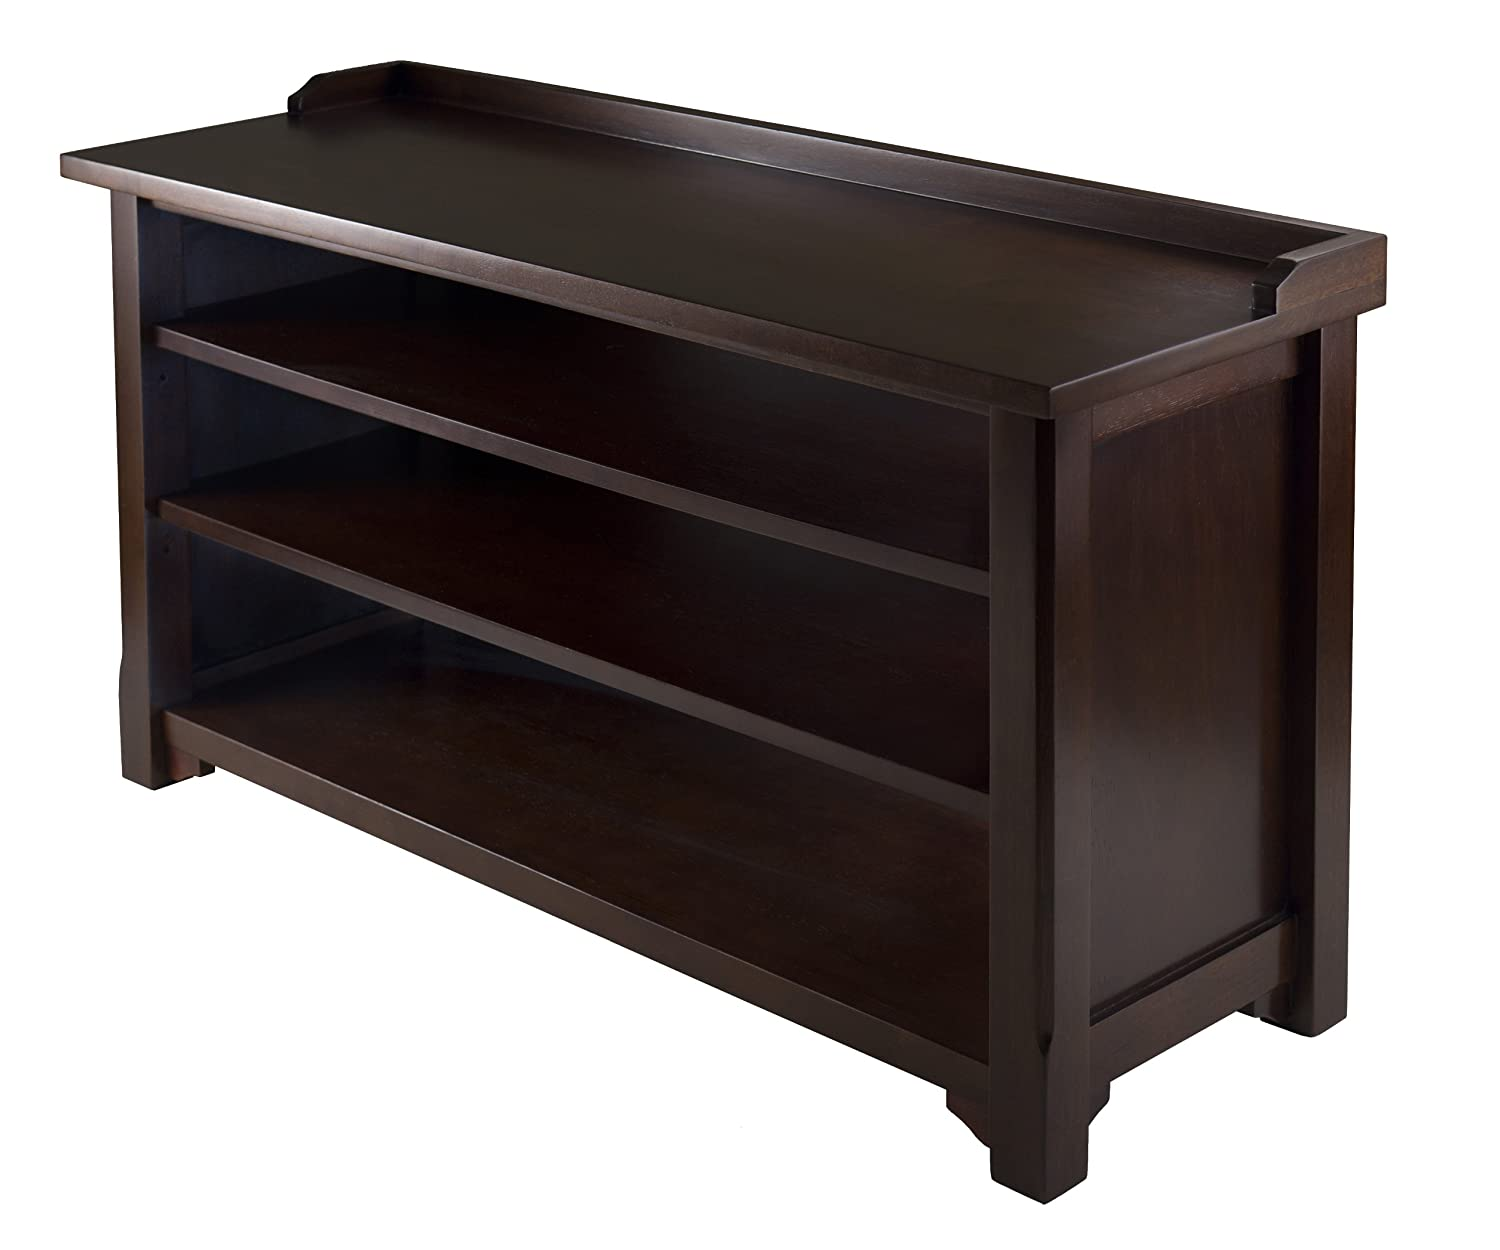 Amazon.com: Winsome Dayton Storage Hall Bench With Shelves: Kitchen U0026 Dining